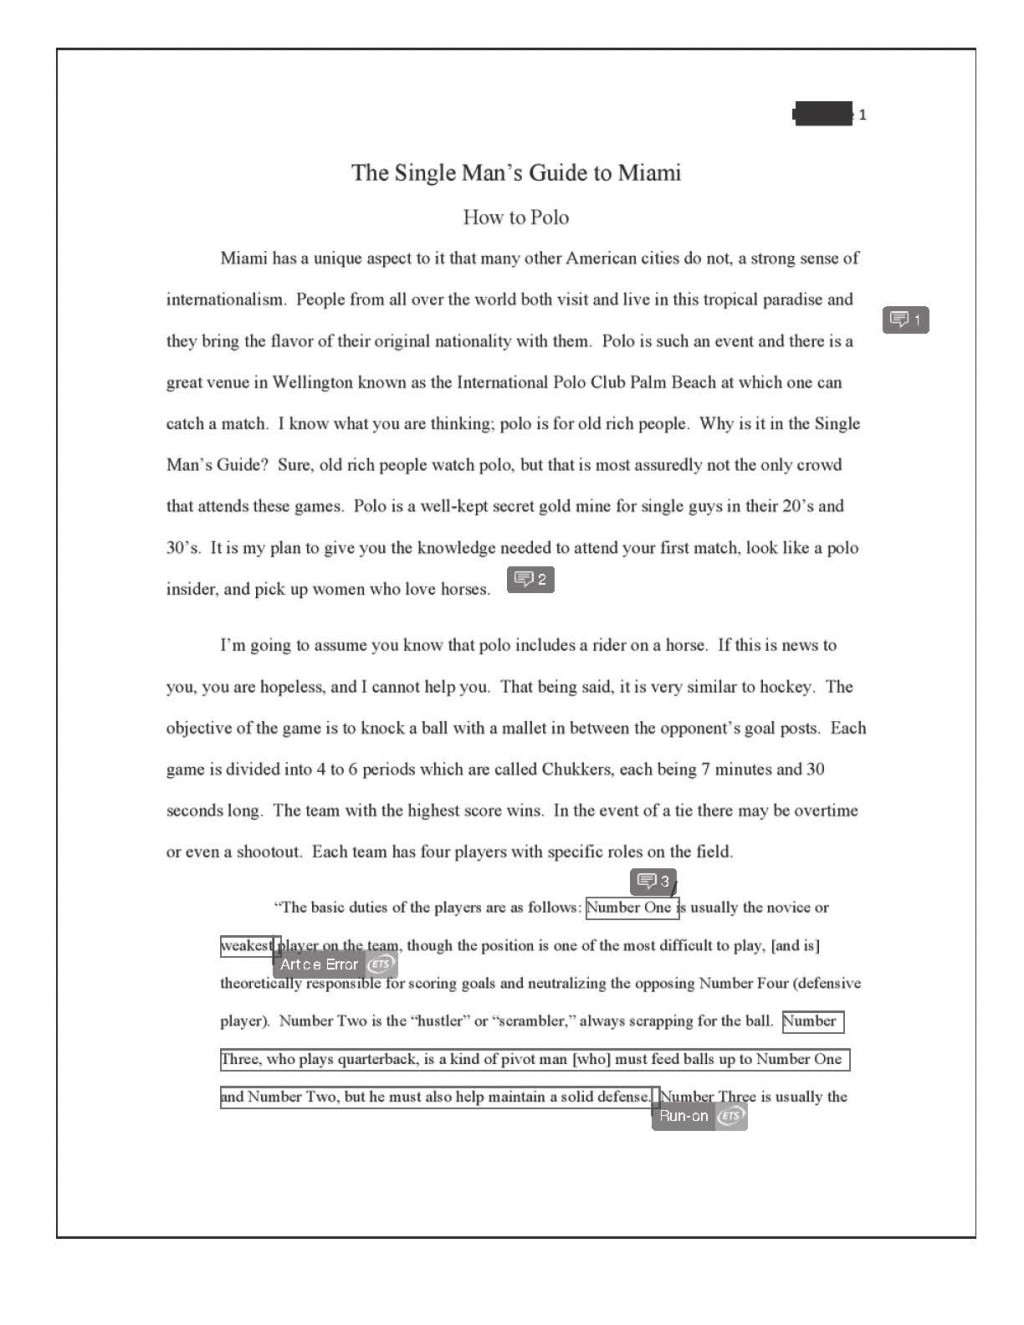 007 Informative Essay Kinds Of Writing Types Essays The Center In Hindi Final How To Polo Redacted P Pdf Task Slideshare Ppt Withs Wikipedia Dreaded Rubric Middle School Graphic Organizer Large